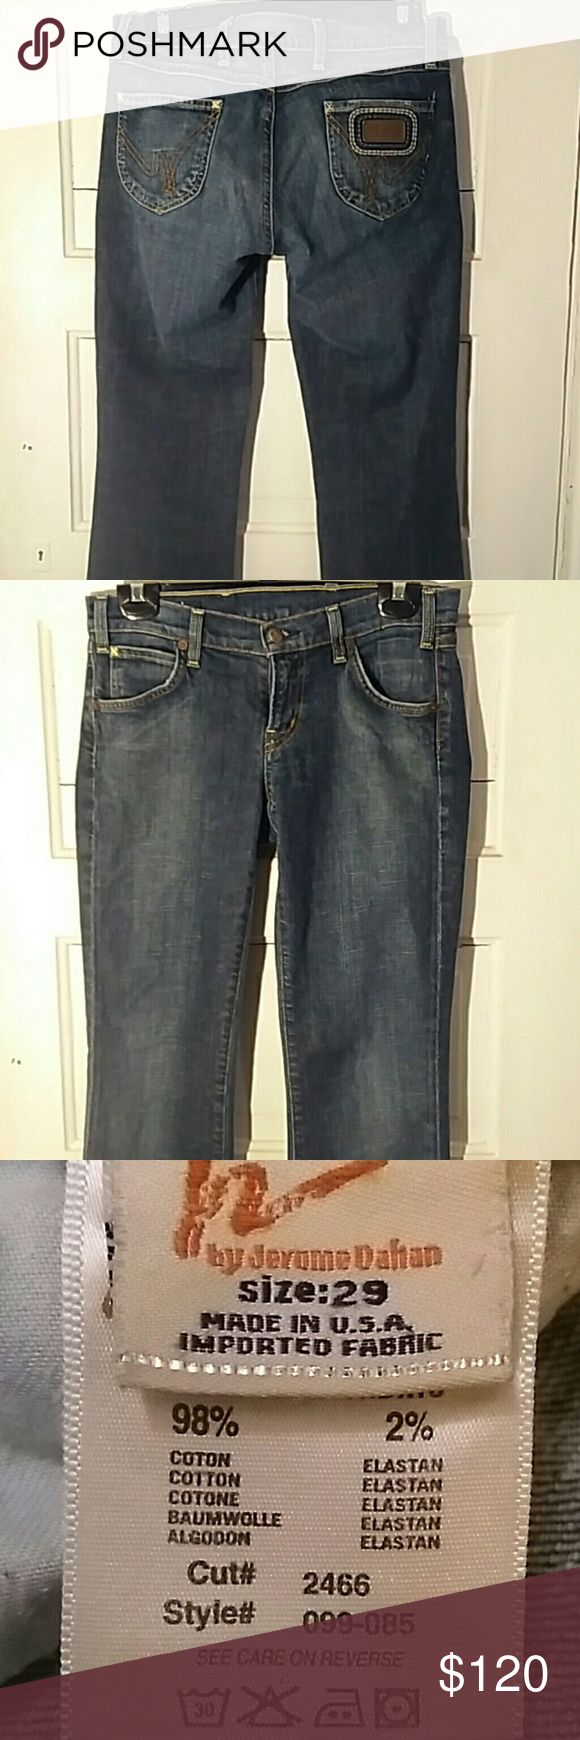 Price Drop Women's Citizens of Humanity Jeans Women's